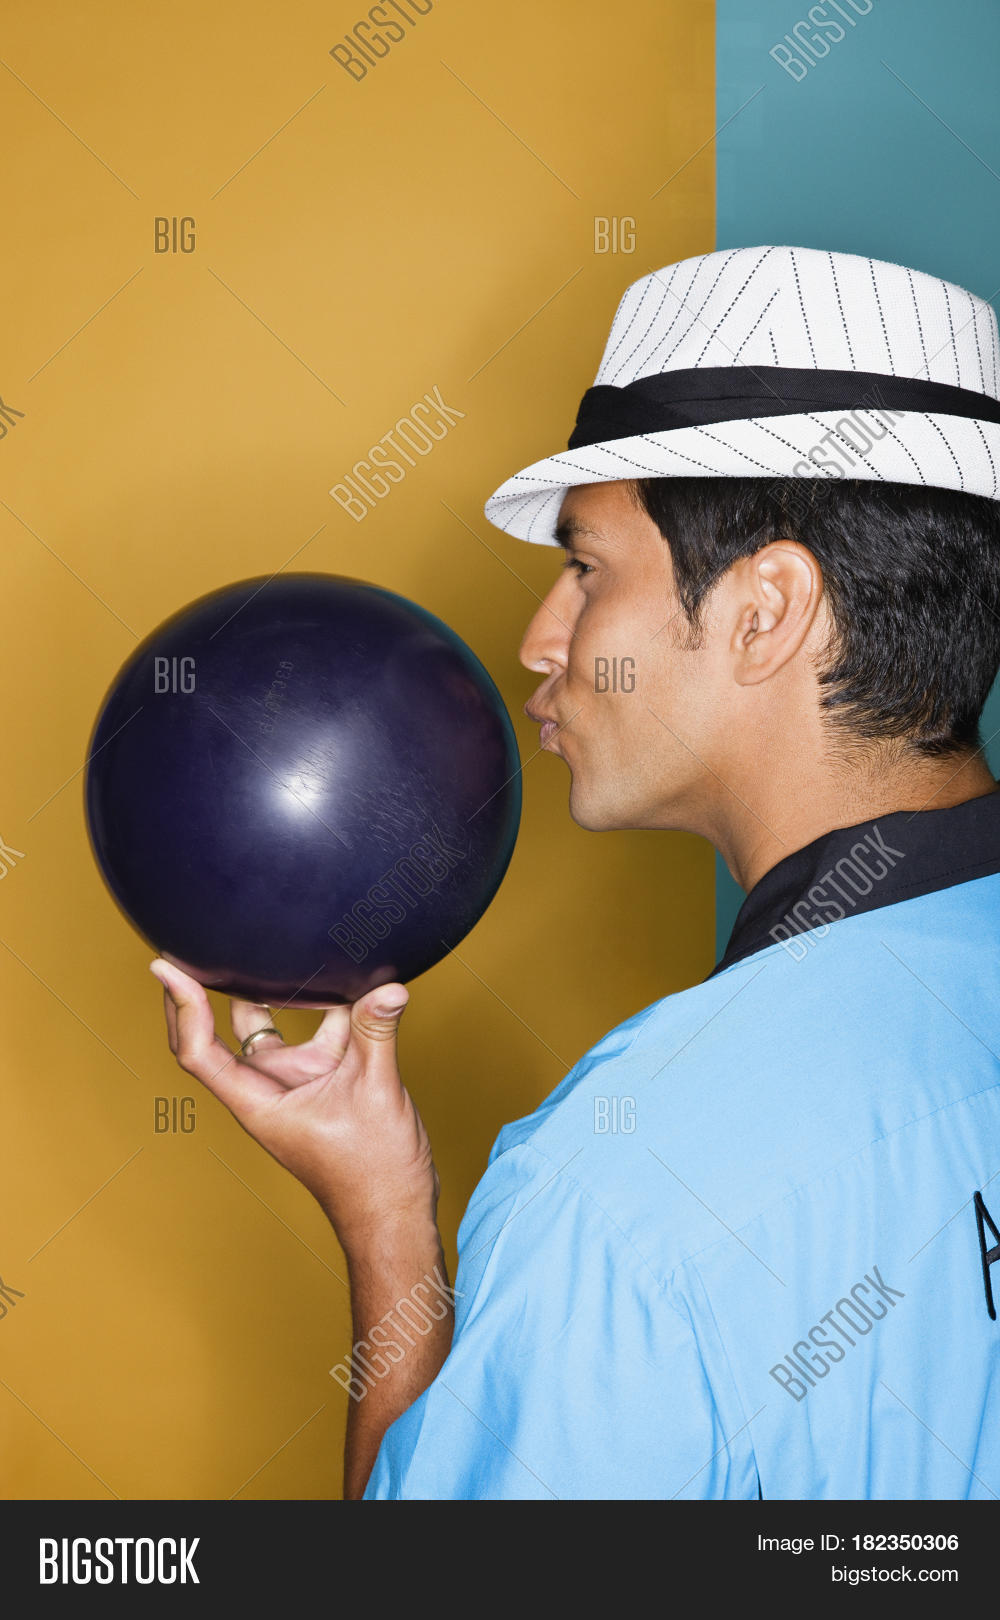 ball hispanic single men Are you looking for a single hispanic man in ball to date find a someone to date on zoosk over 30 million single people are using zoosk to find people to date.